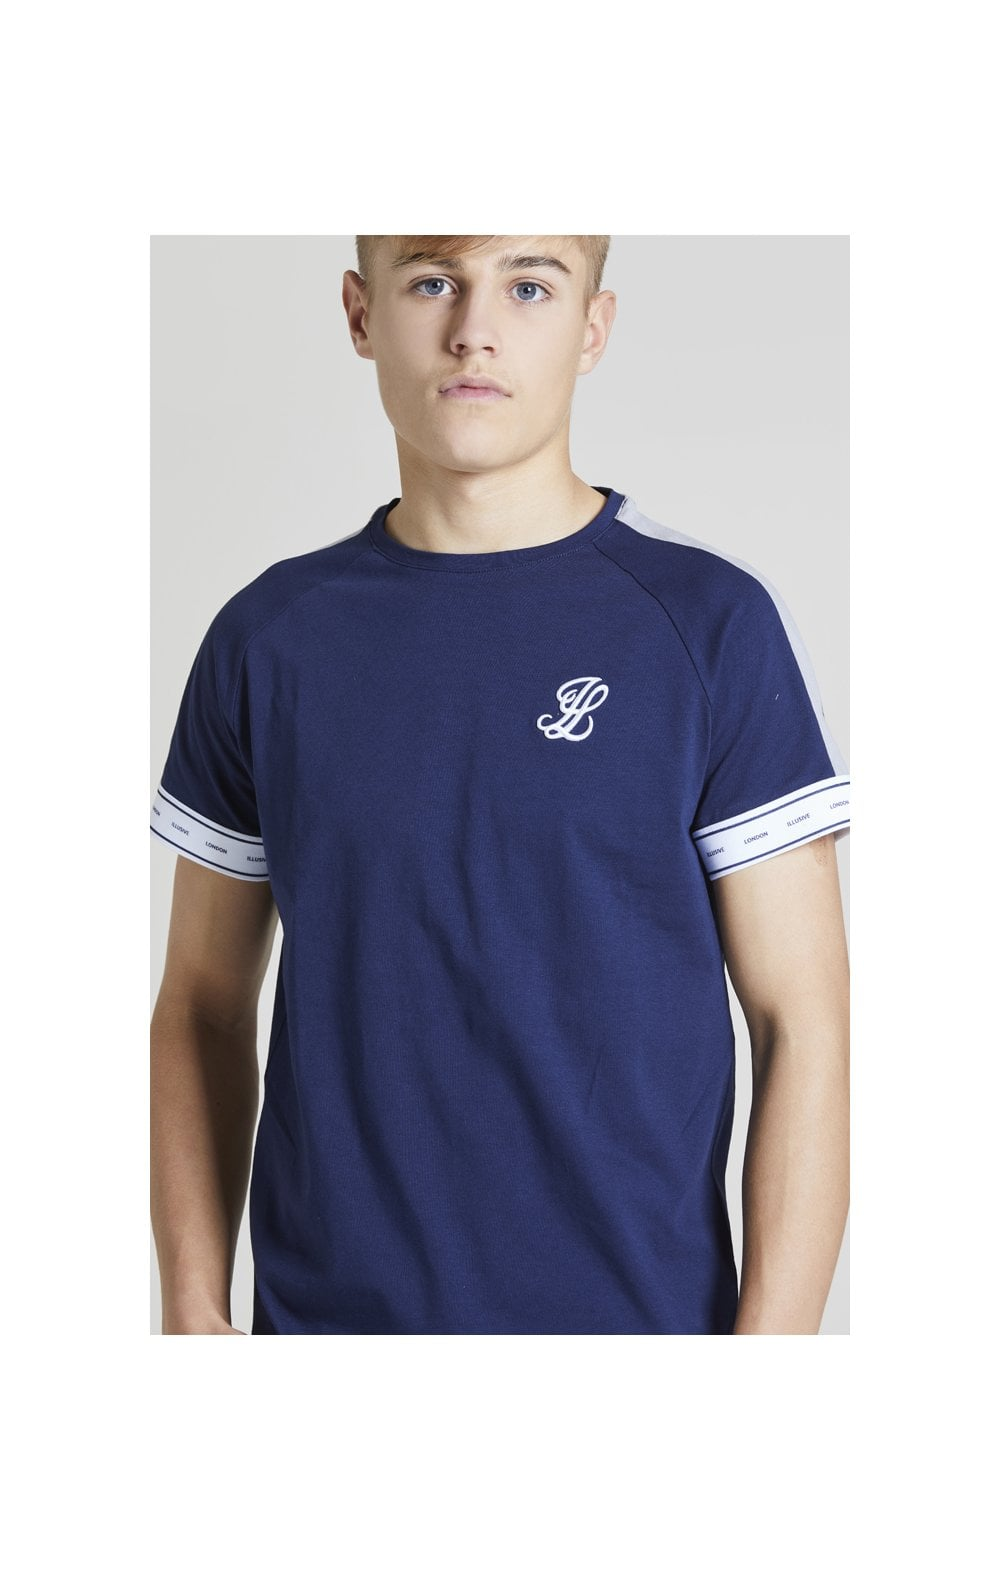 Illusive London Technical T-Shirt Platten - Marineblau und Grau